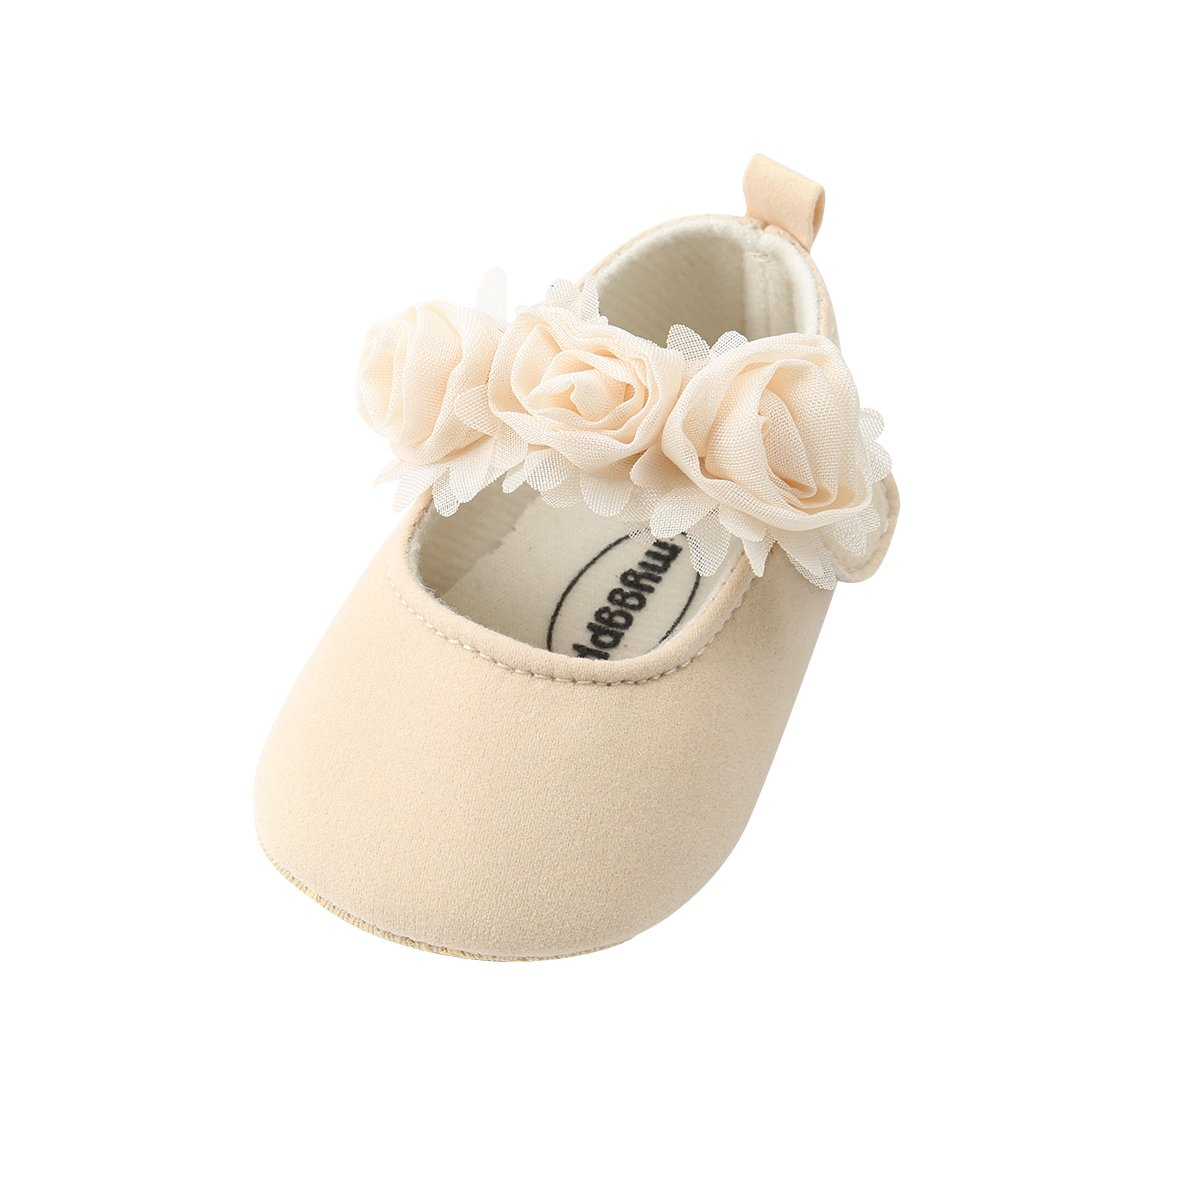 Tutoo Baby Girls' Pageant Shoes Casual Mary Jane Newborn Infant Walkers Shoes (5.1 inch(12-18 Months), Beige)